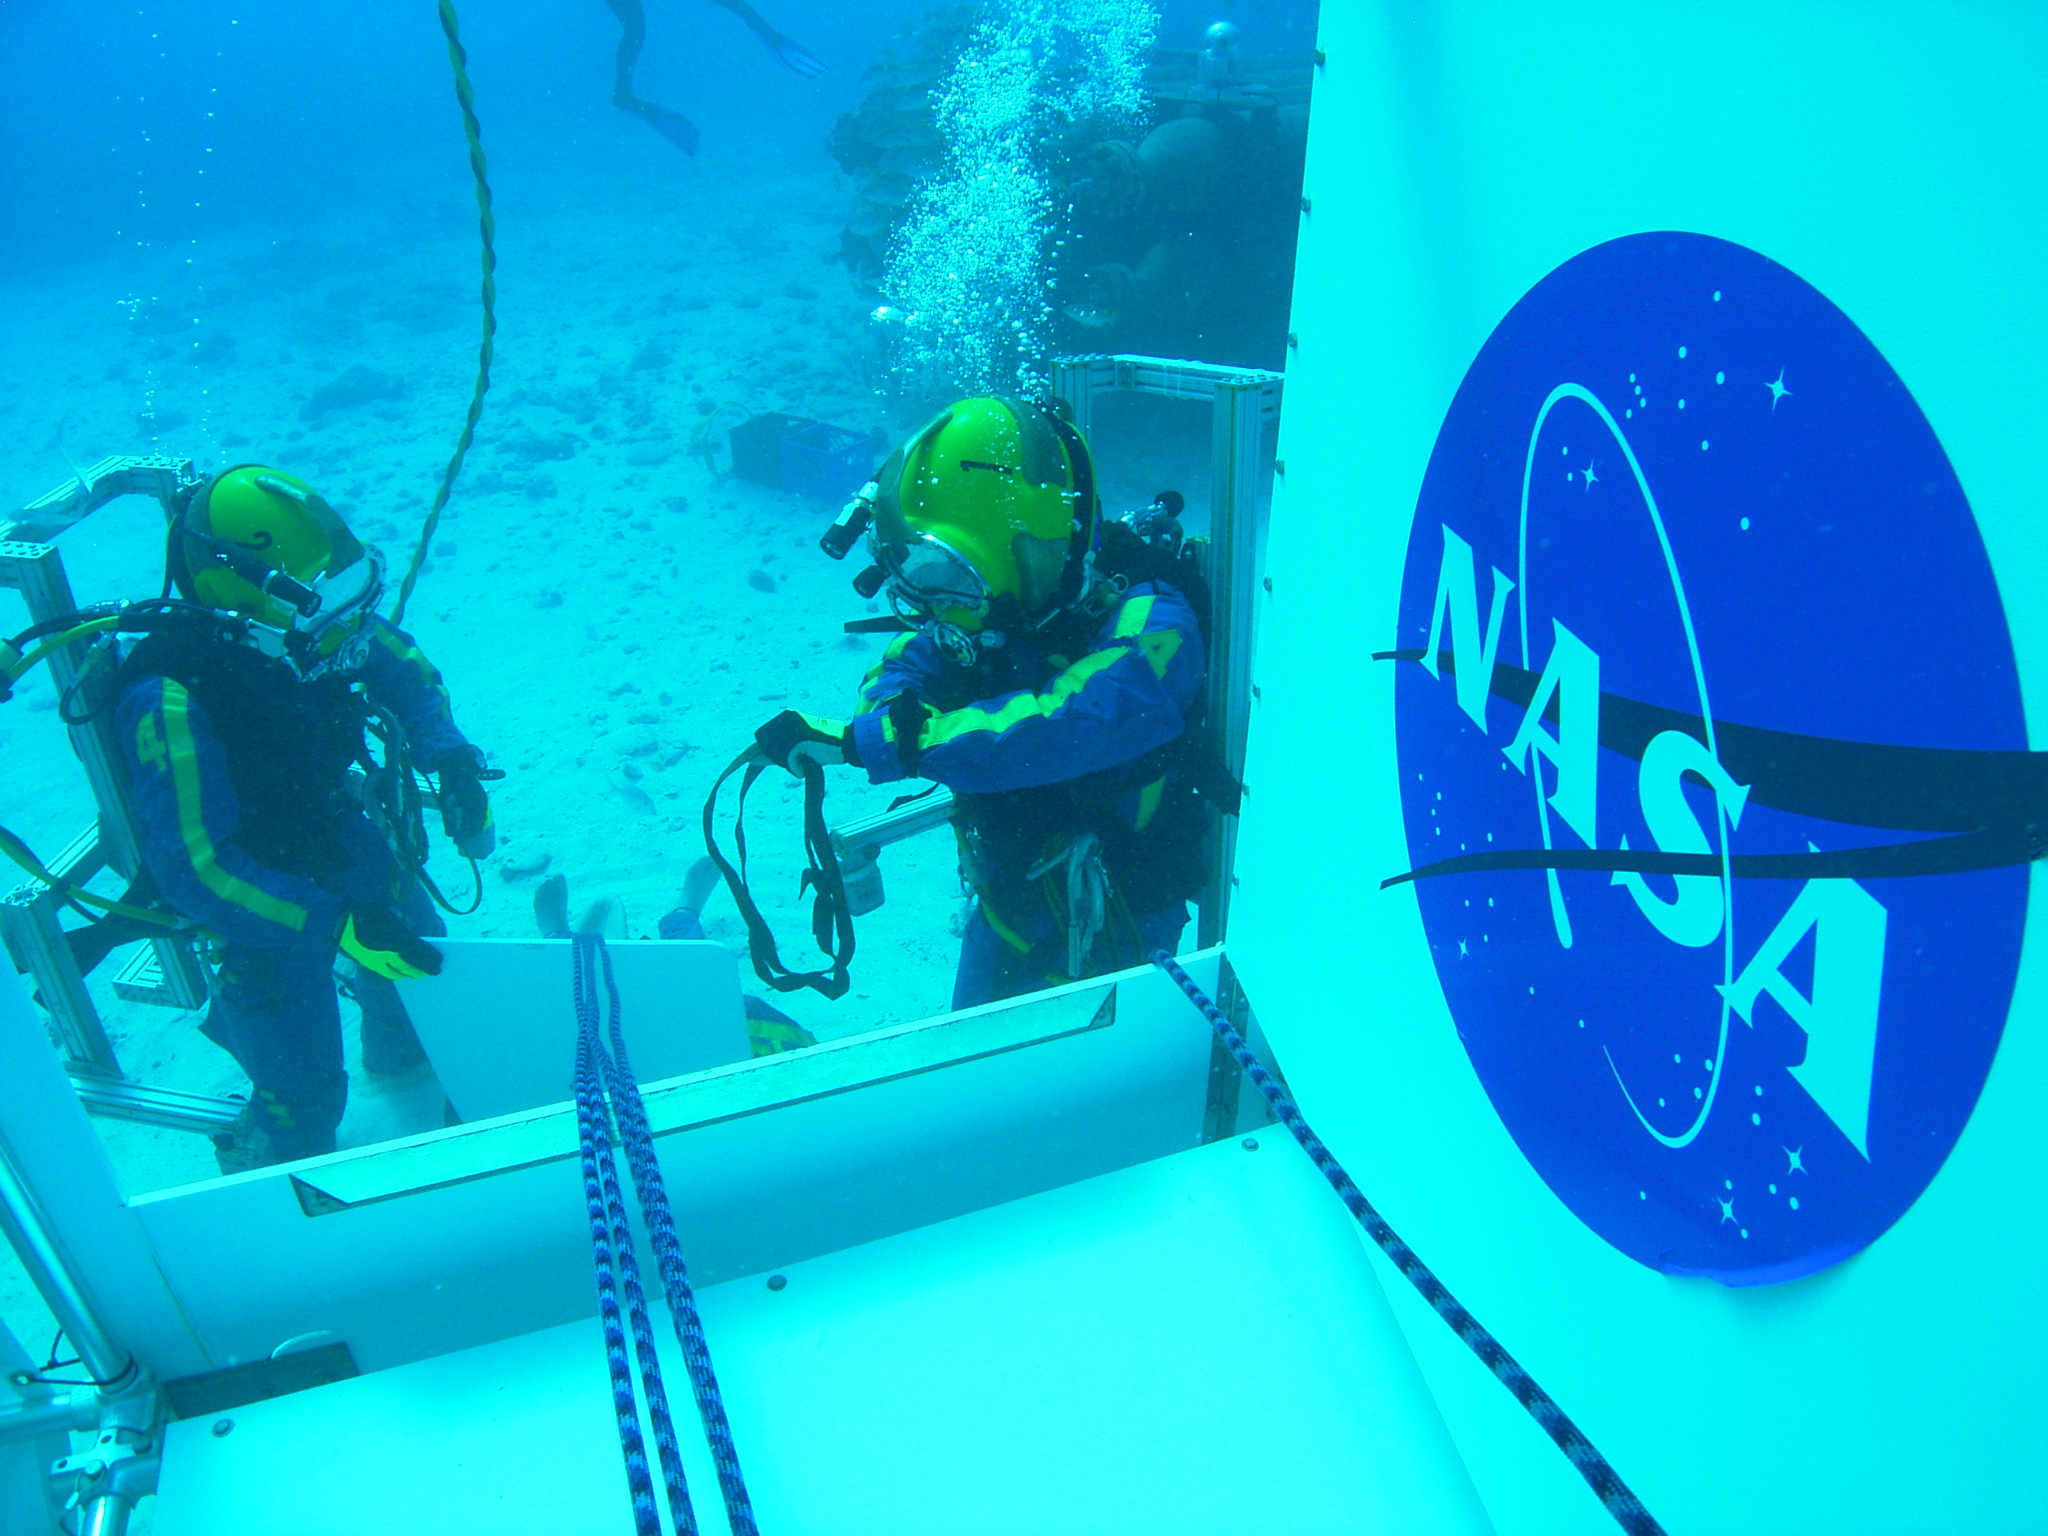 NASA Aquanaut crew performing demonstration of incapacitated crewman recovery on the side hatch of the SEV during the NEEMO 14 mission.